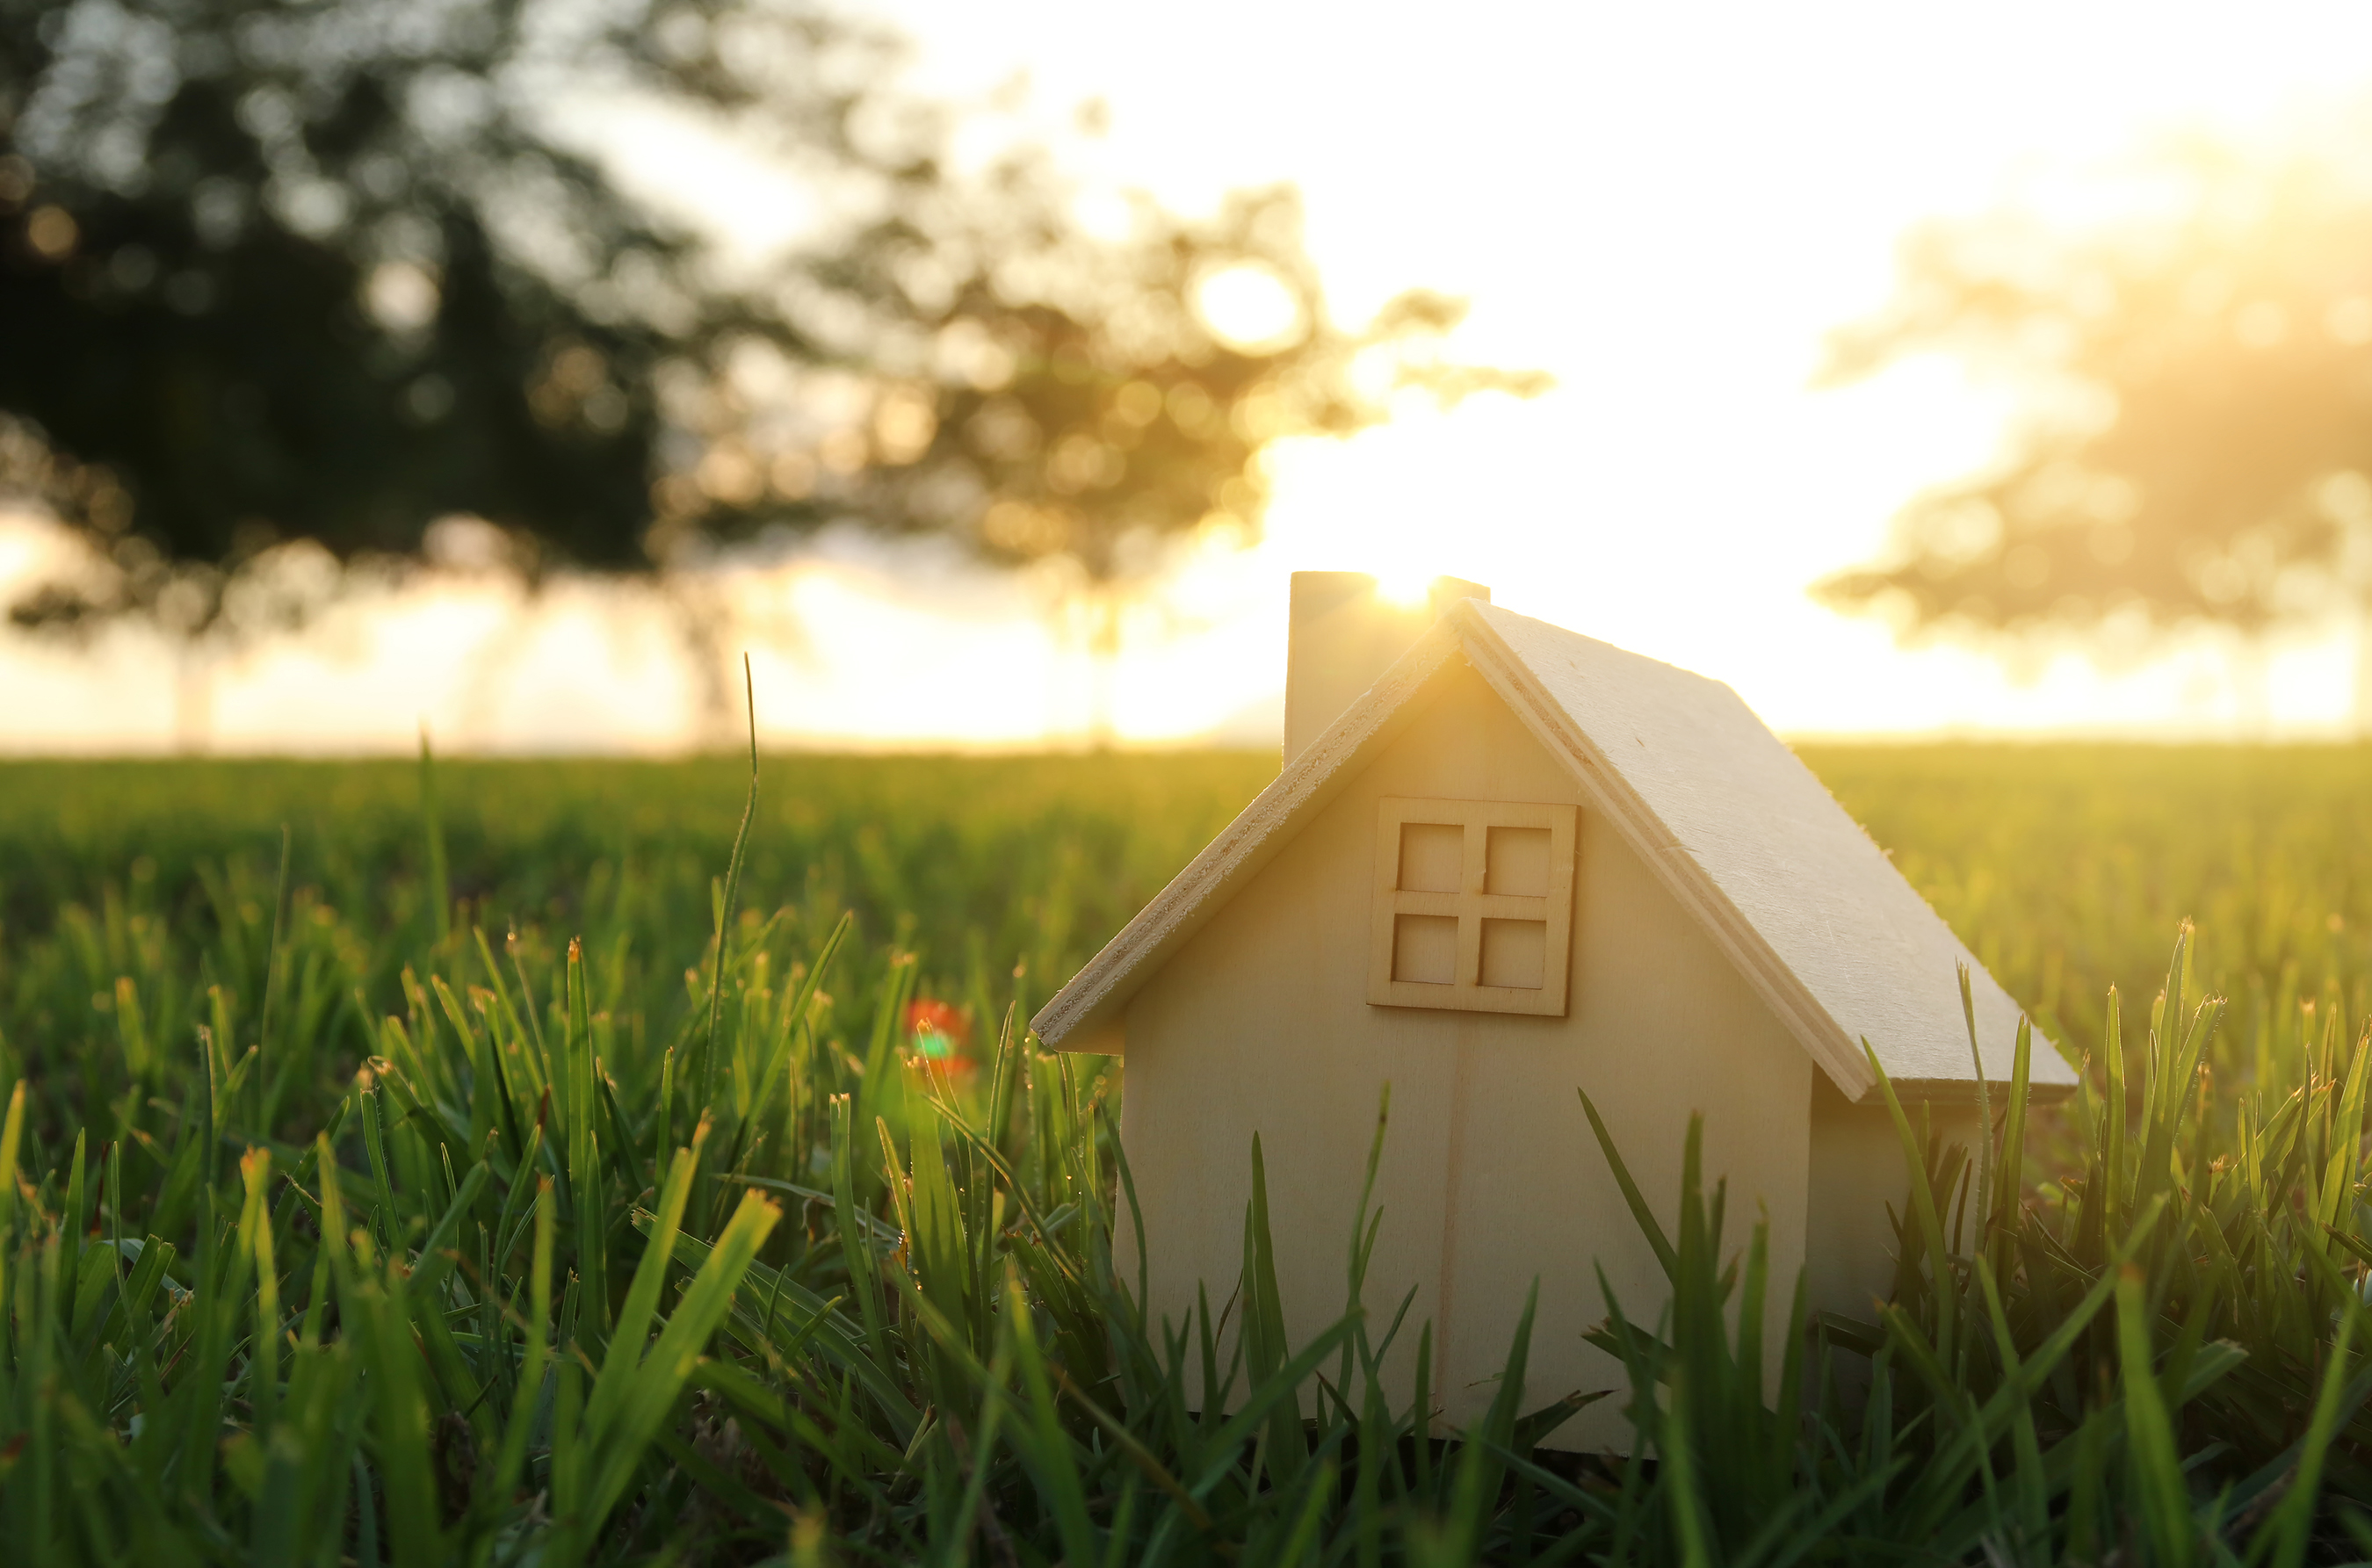 Easy ways to care for your home this summer